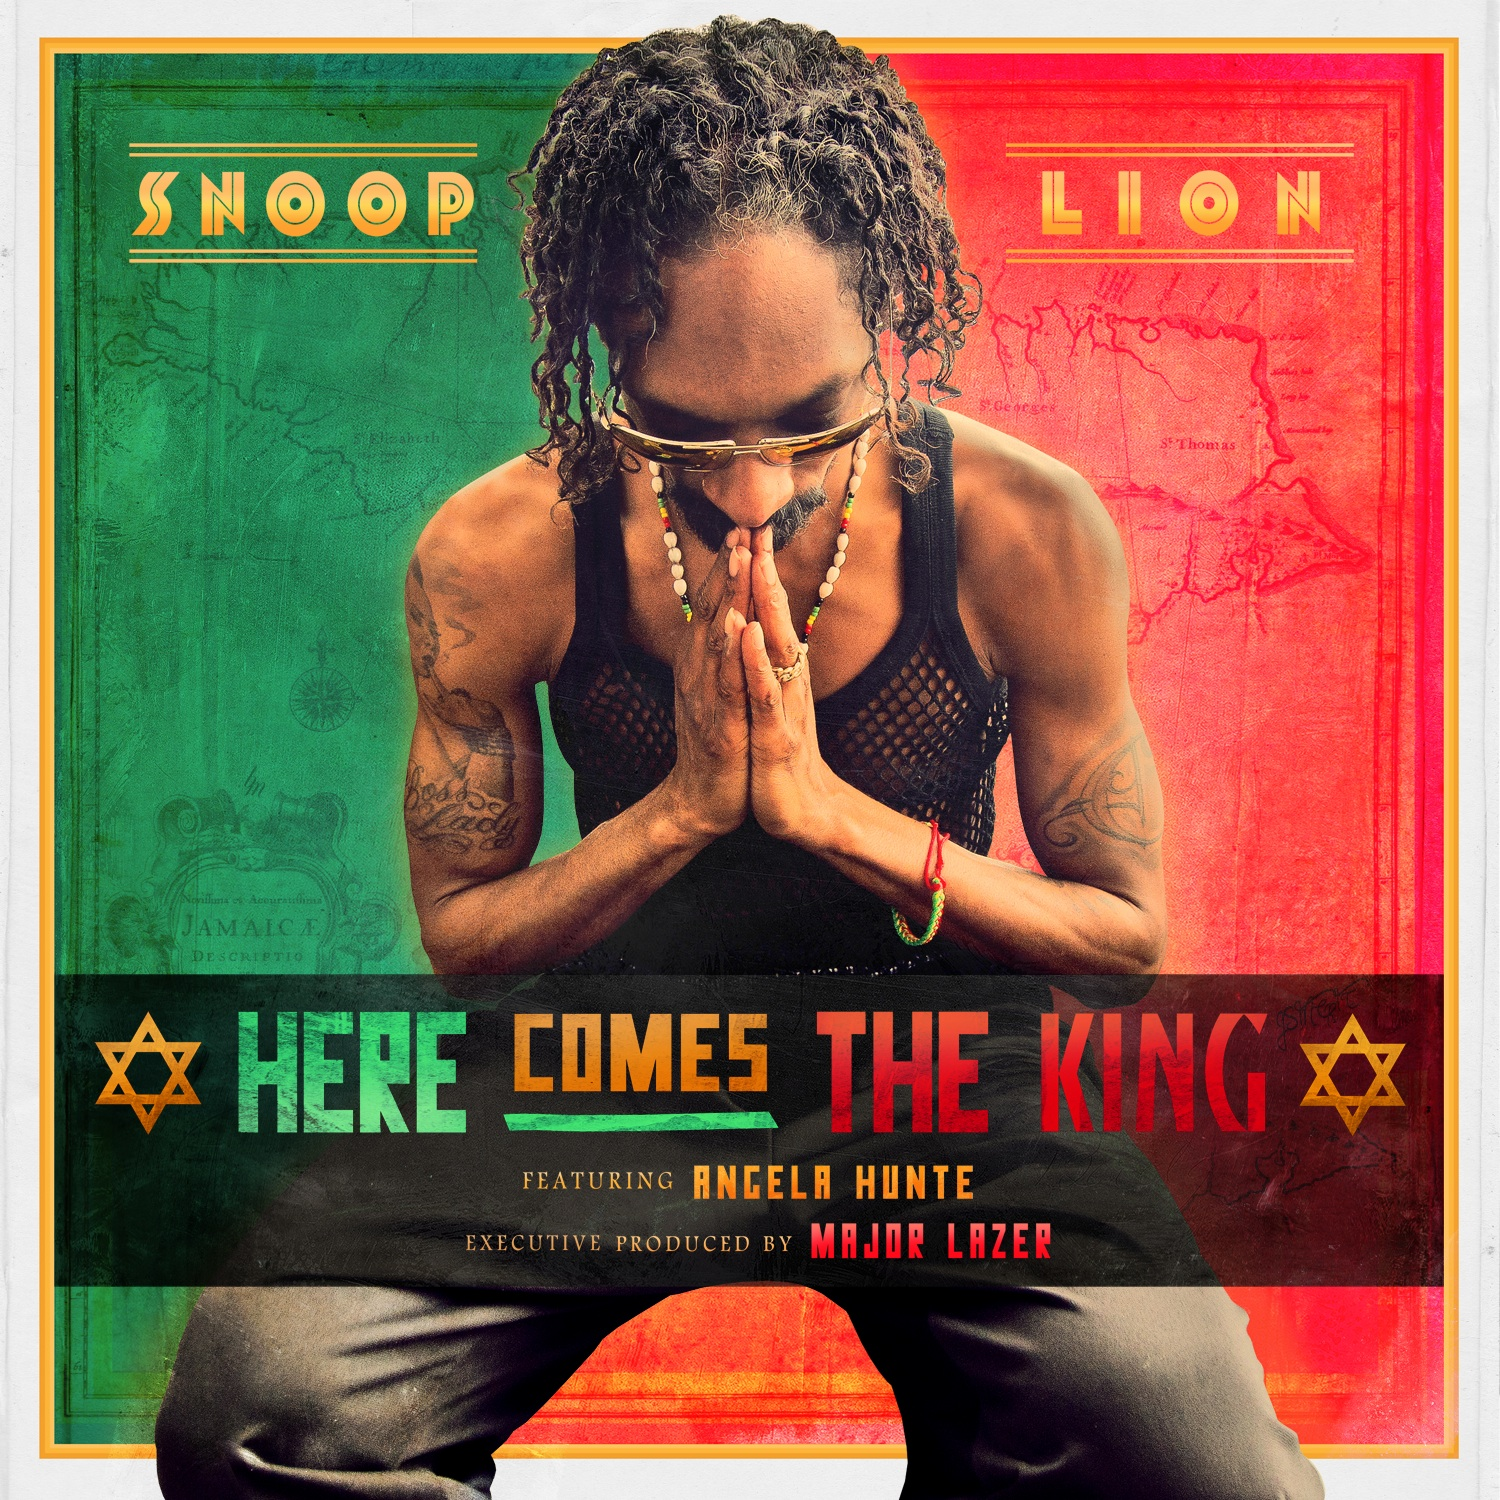 http://3.bp.blogspot.com/-wT3hjQX-fhQ/URPc7y3EyWI/AAAAAAAAFoE/gUaHSIUkWJo/s1600/artworks+original+pimpiao+snoop+lion+dogg+here+comes+the+king.jpg